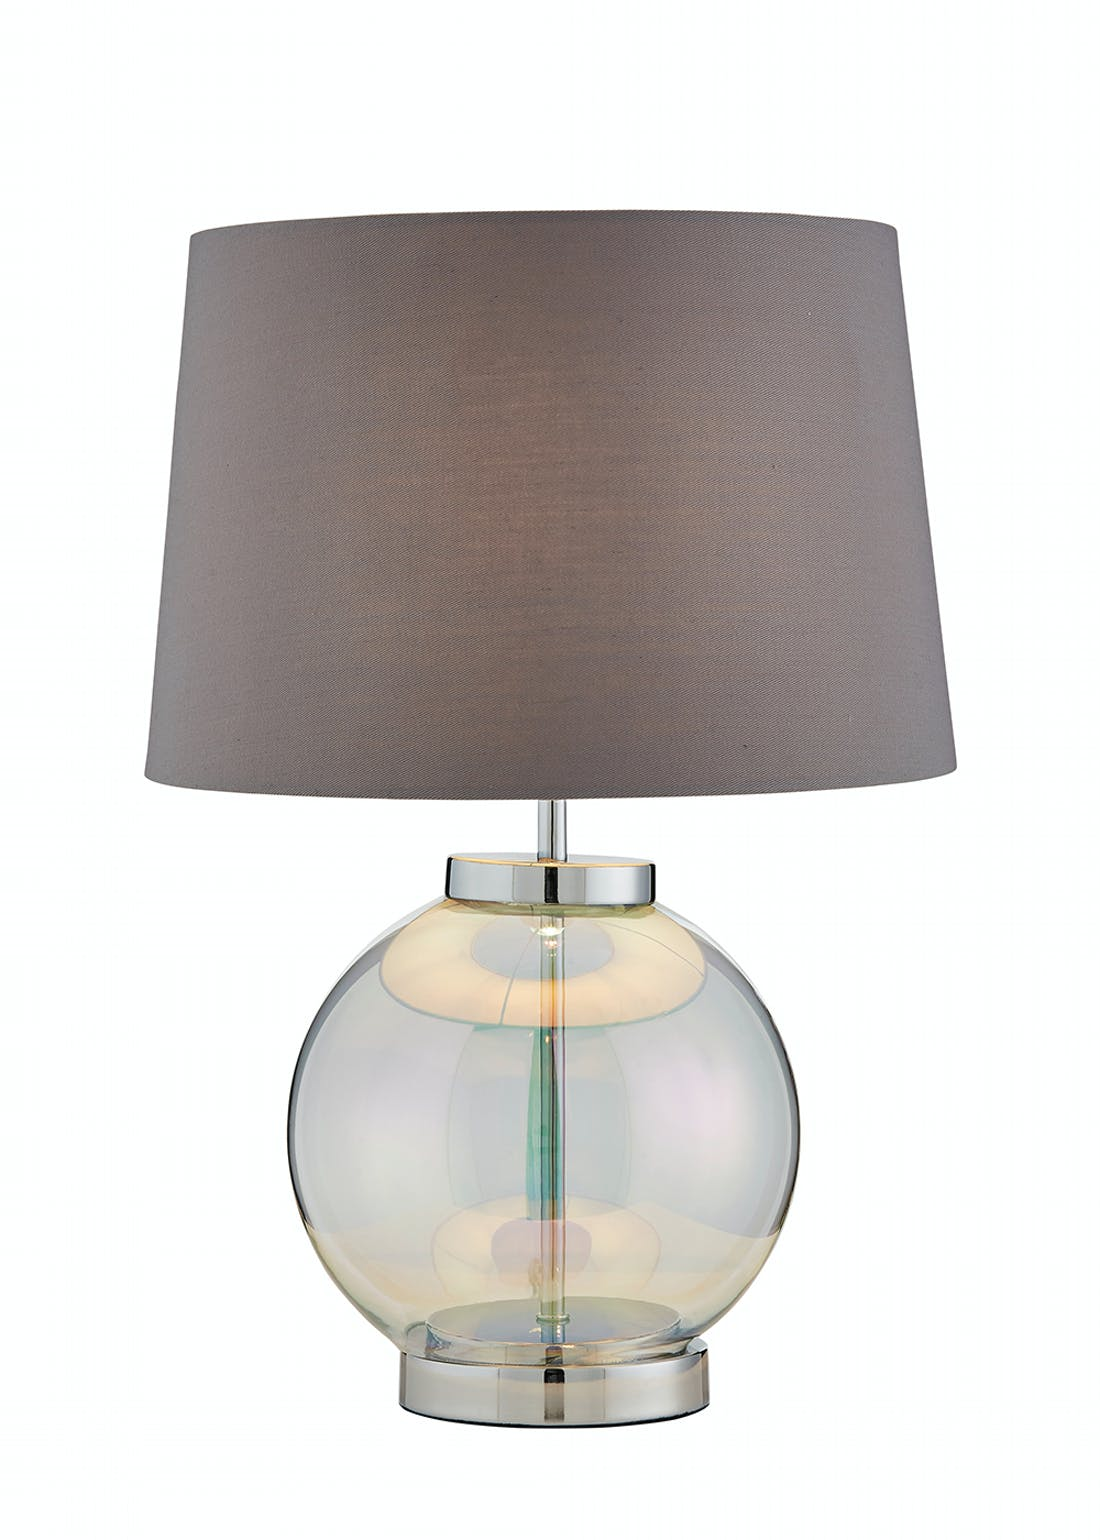 Iridescent Glass Base Table Lamp (H45cm x W31cm)